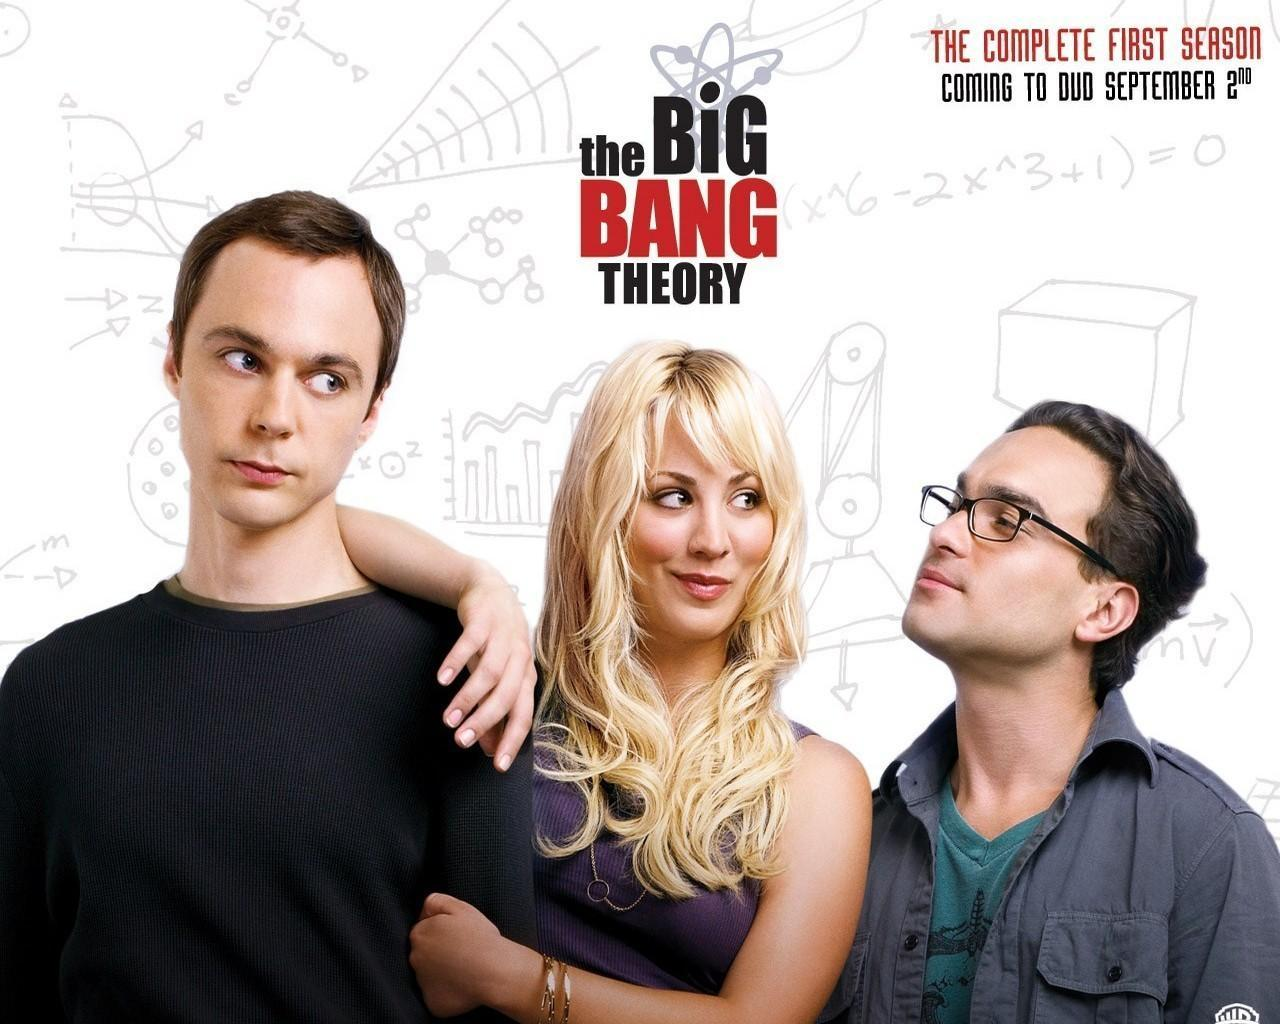 Best Wallpaper Movie The Theory Everything - The_Big_Bang_Theory_TV_Series-200995697-large  You Should Have_46845.jpg